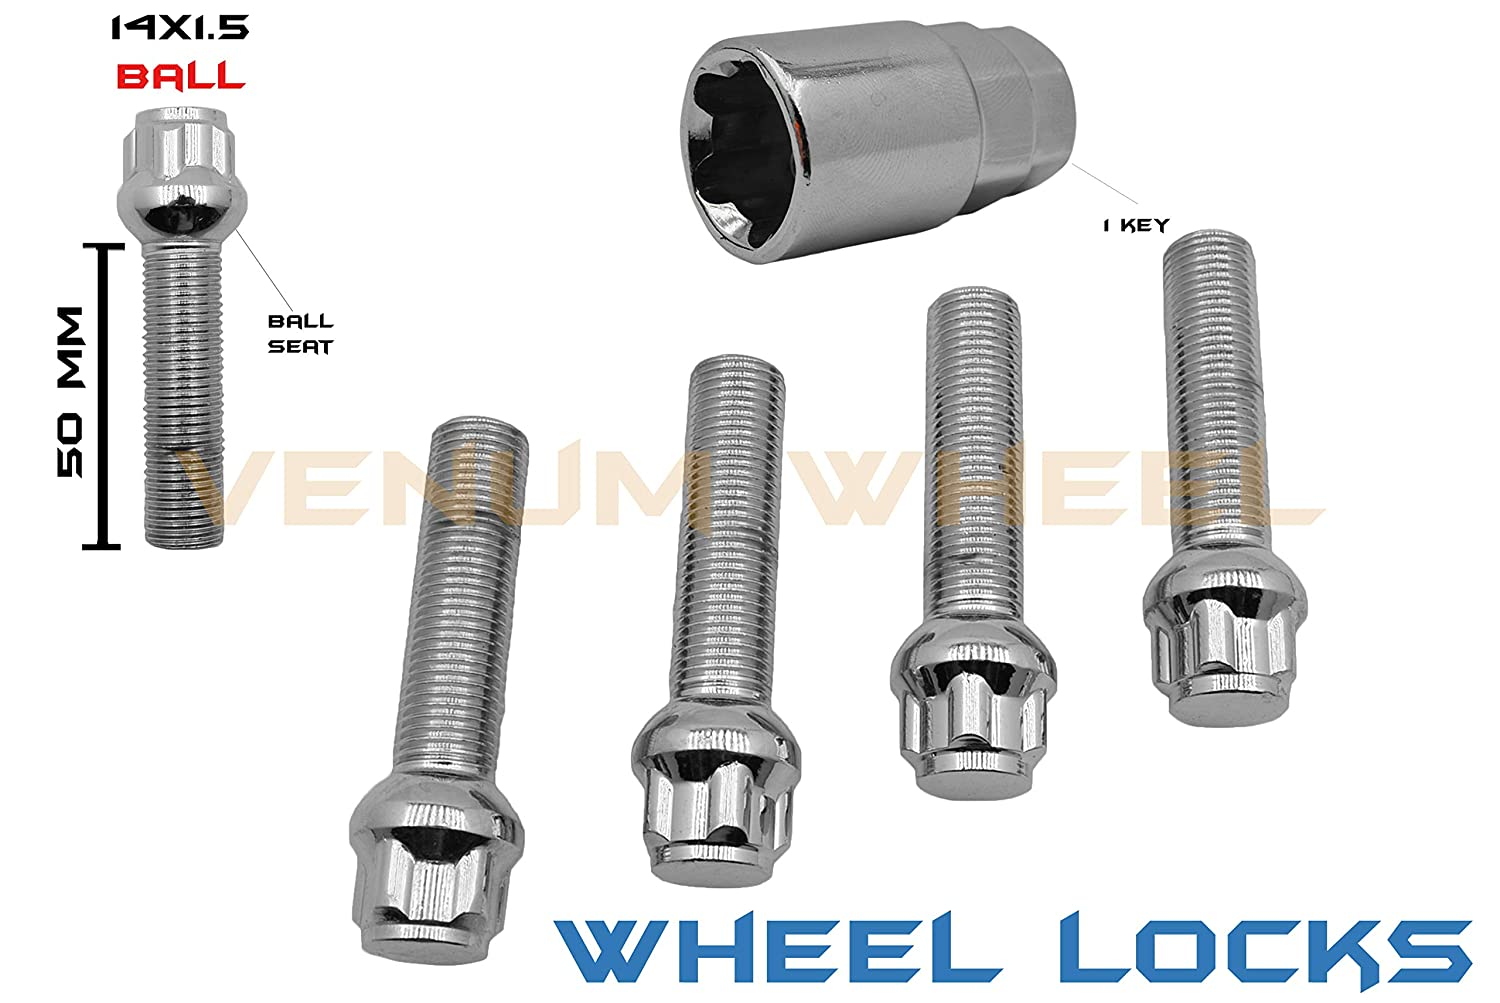 5 Pc M14x1.5 Steel Chrome Wheel Locks Lug Bolts | Ball Seat | 50 mm EXTENDED Shank Length | +1 Key | Compatible With Audi Mercedes Benz Volkswagen W/Factory Wheels Venum Wheel Accessories